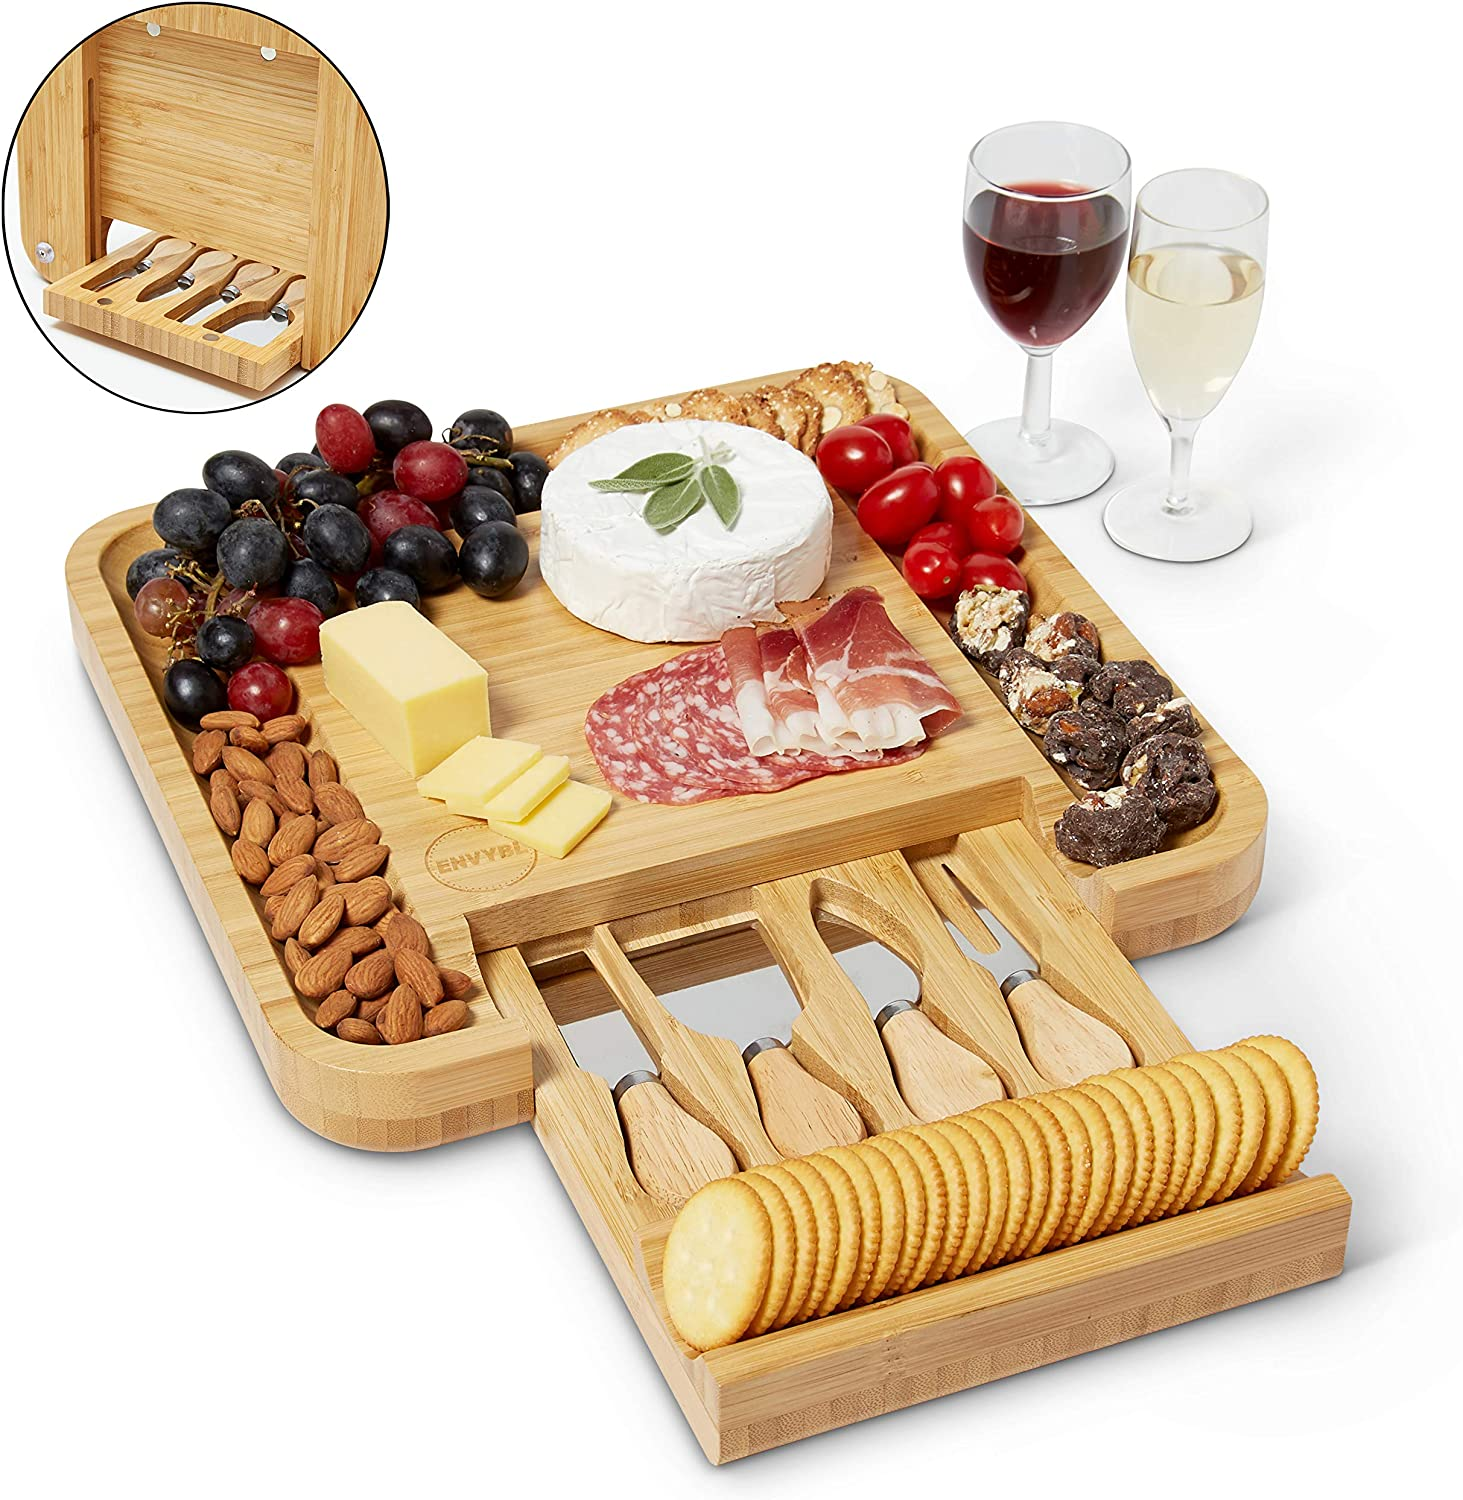 Envybl Bamboo Cheese Board & Cutlery Knife Set Serving Tray - An Elegant Antibacterial Charcuterie Platter - Perfect Appetizer Appliance Essential for Meat & Wine Hosting or Wedding & Birthday Gifts